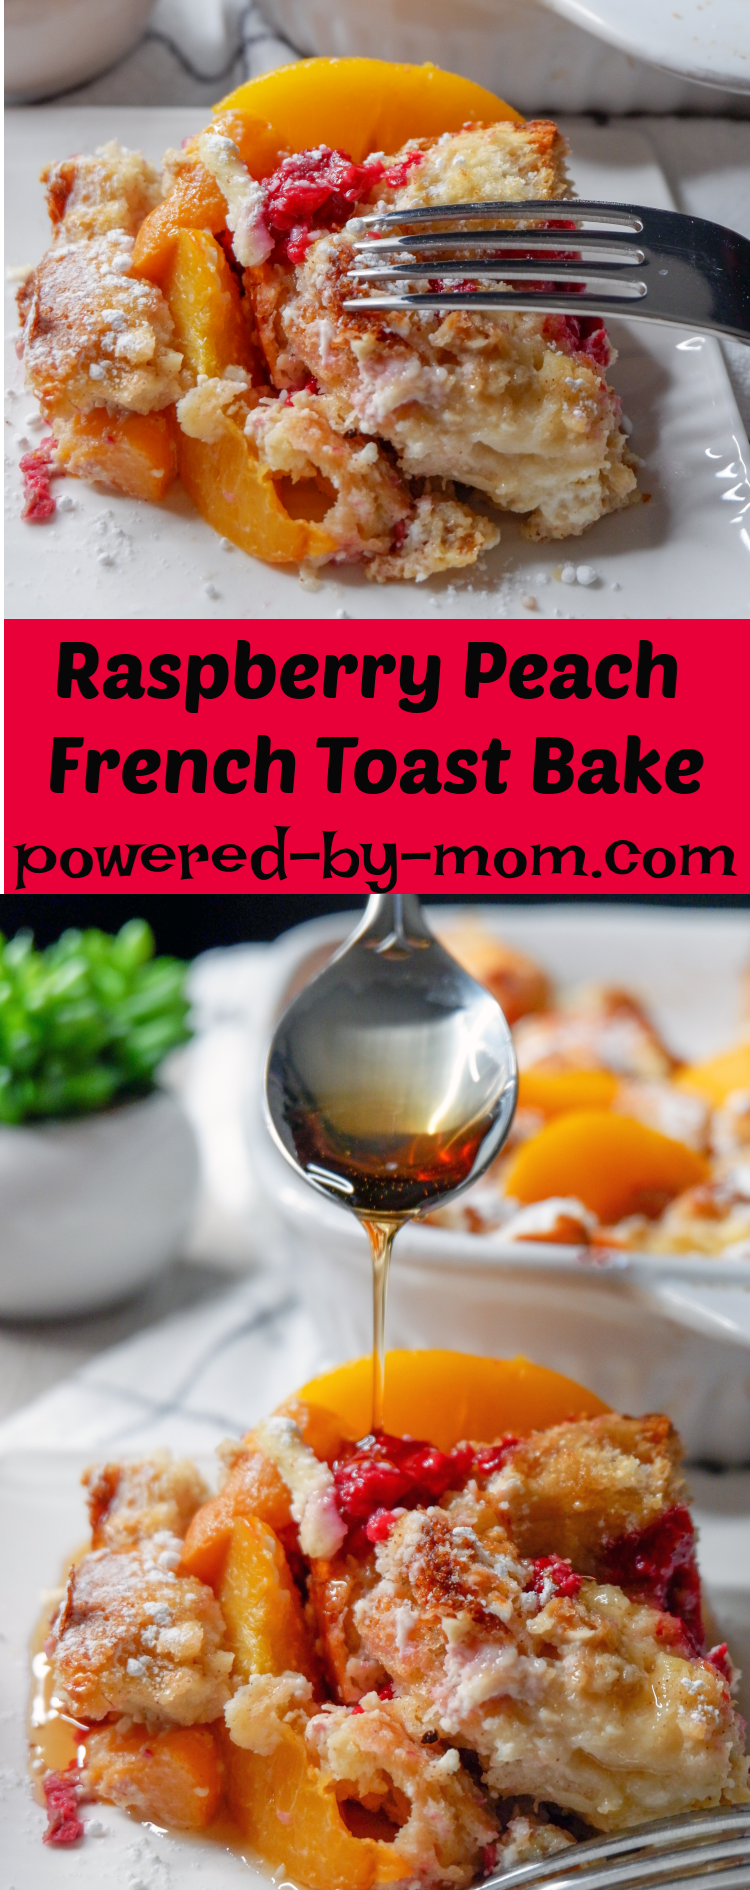 Whip up this raspberry peach baked french toast recipe the night before, so all you have to do is toss it in the oven to bake in the morning. An overnight french toast bake that is filled with fruit and tender french bread. #easy #best #frenchtoast #casserole #overnight #fruit #oven #brunch #holiday #breakfast